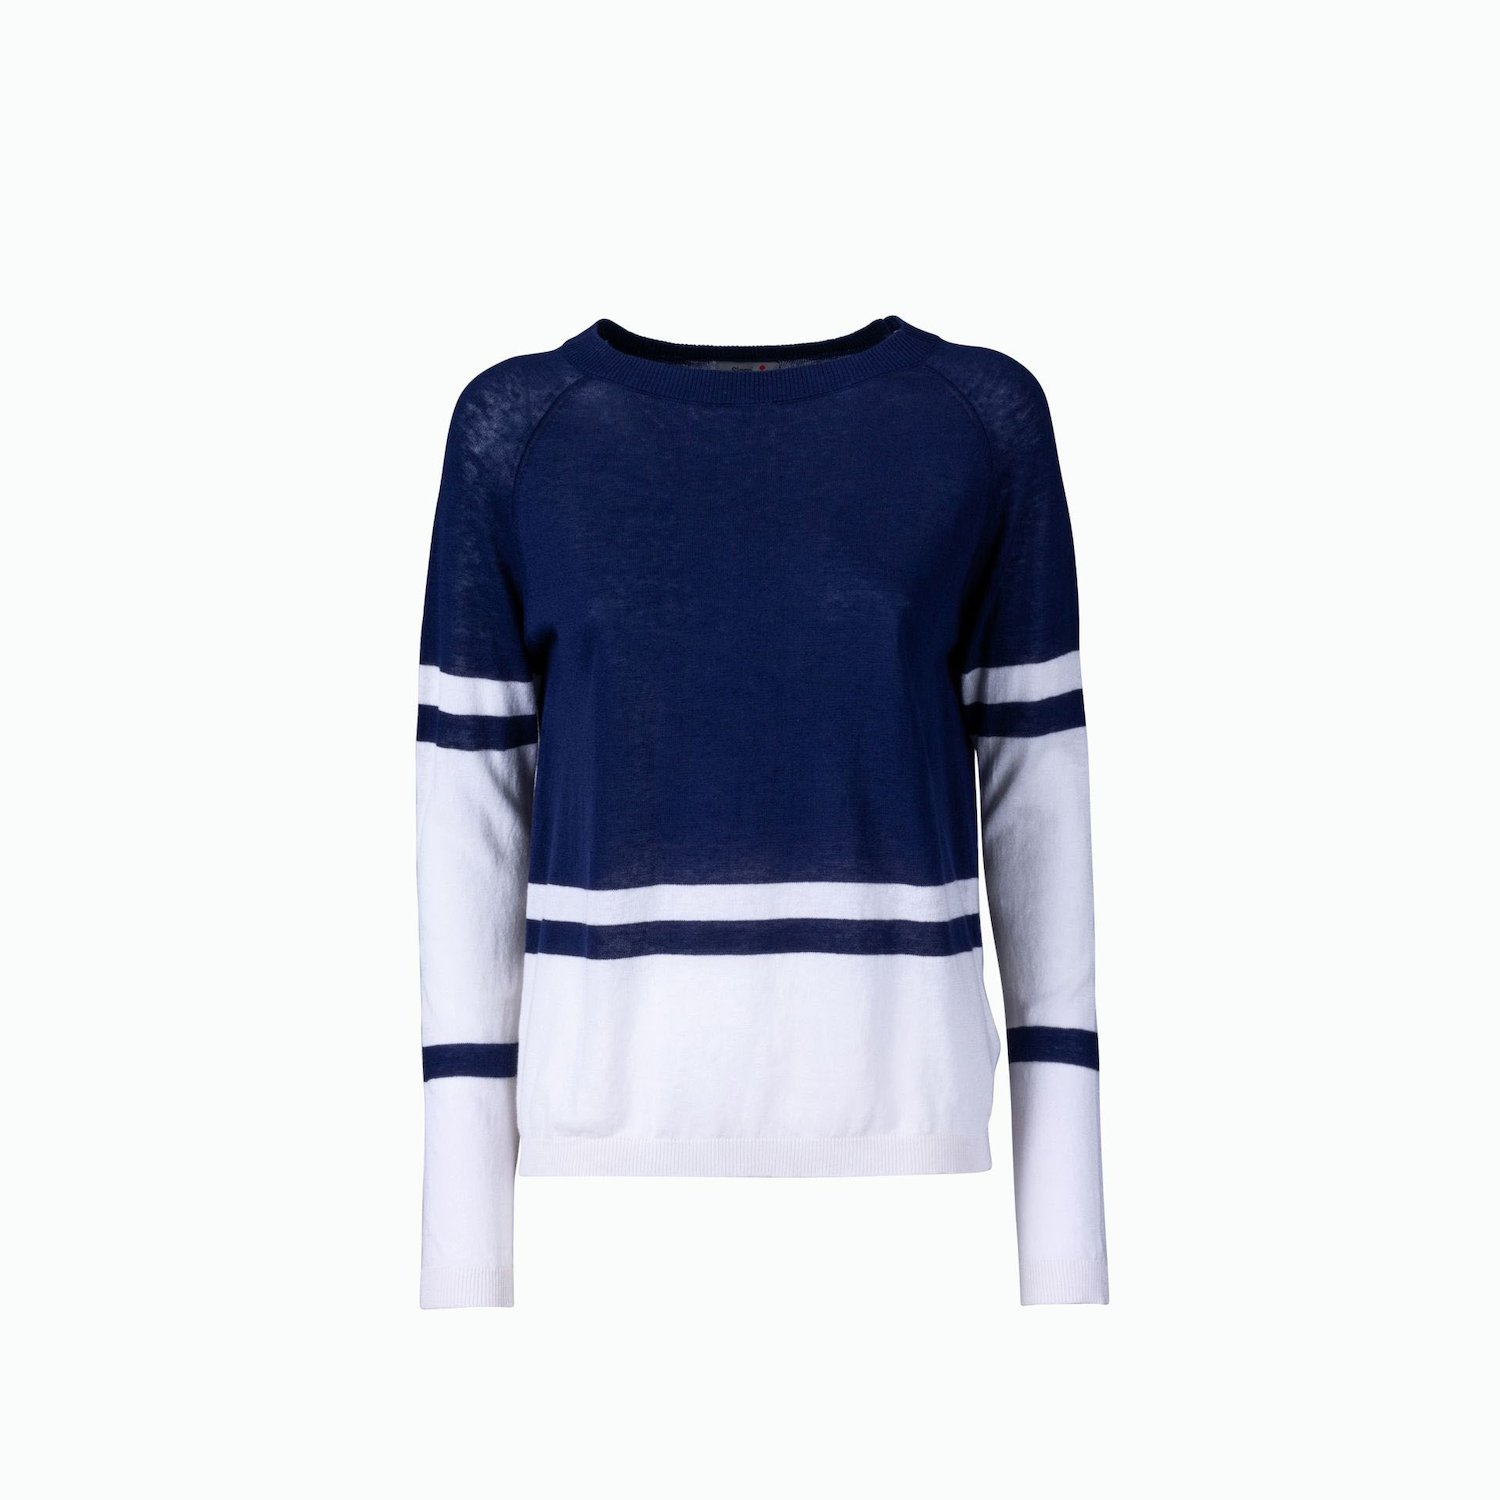 C159 Jumper - Navy / White